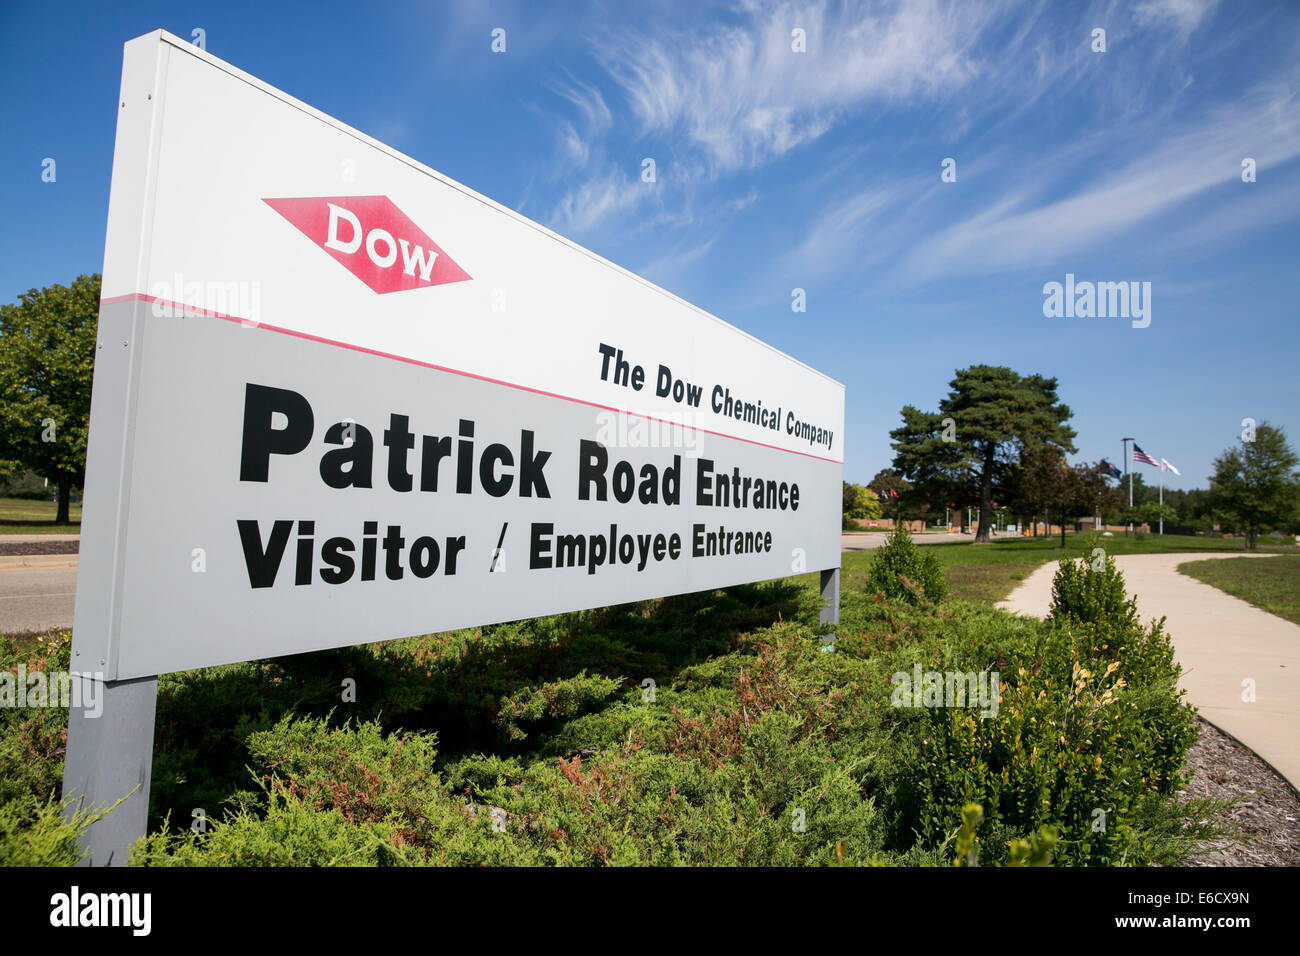 Der Hauptsitz von the Dow Chemical Company in Midland, Michigan/USA. Stockbild